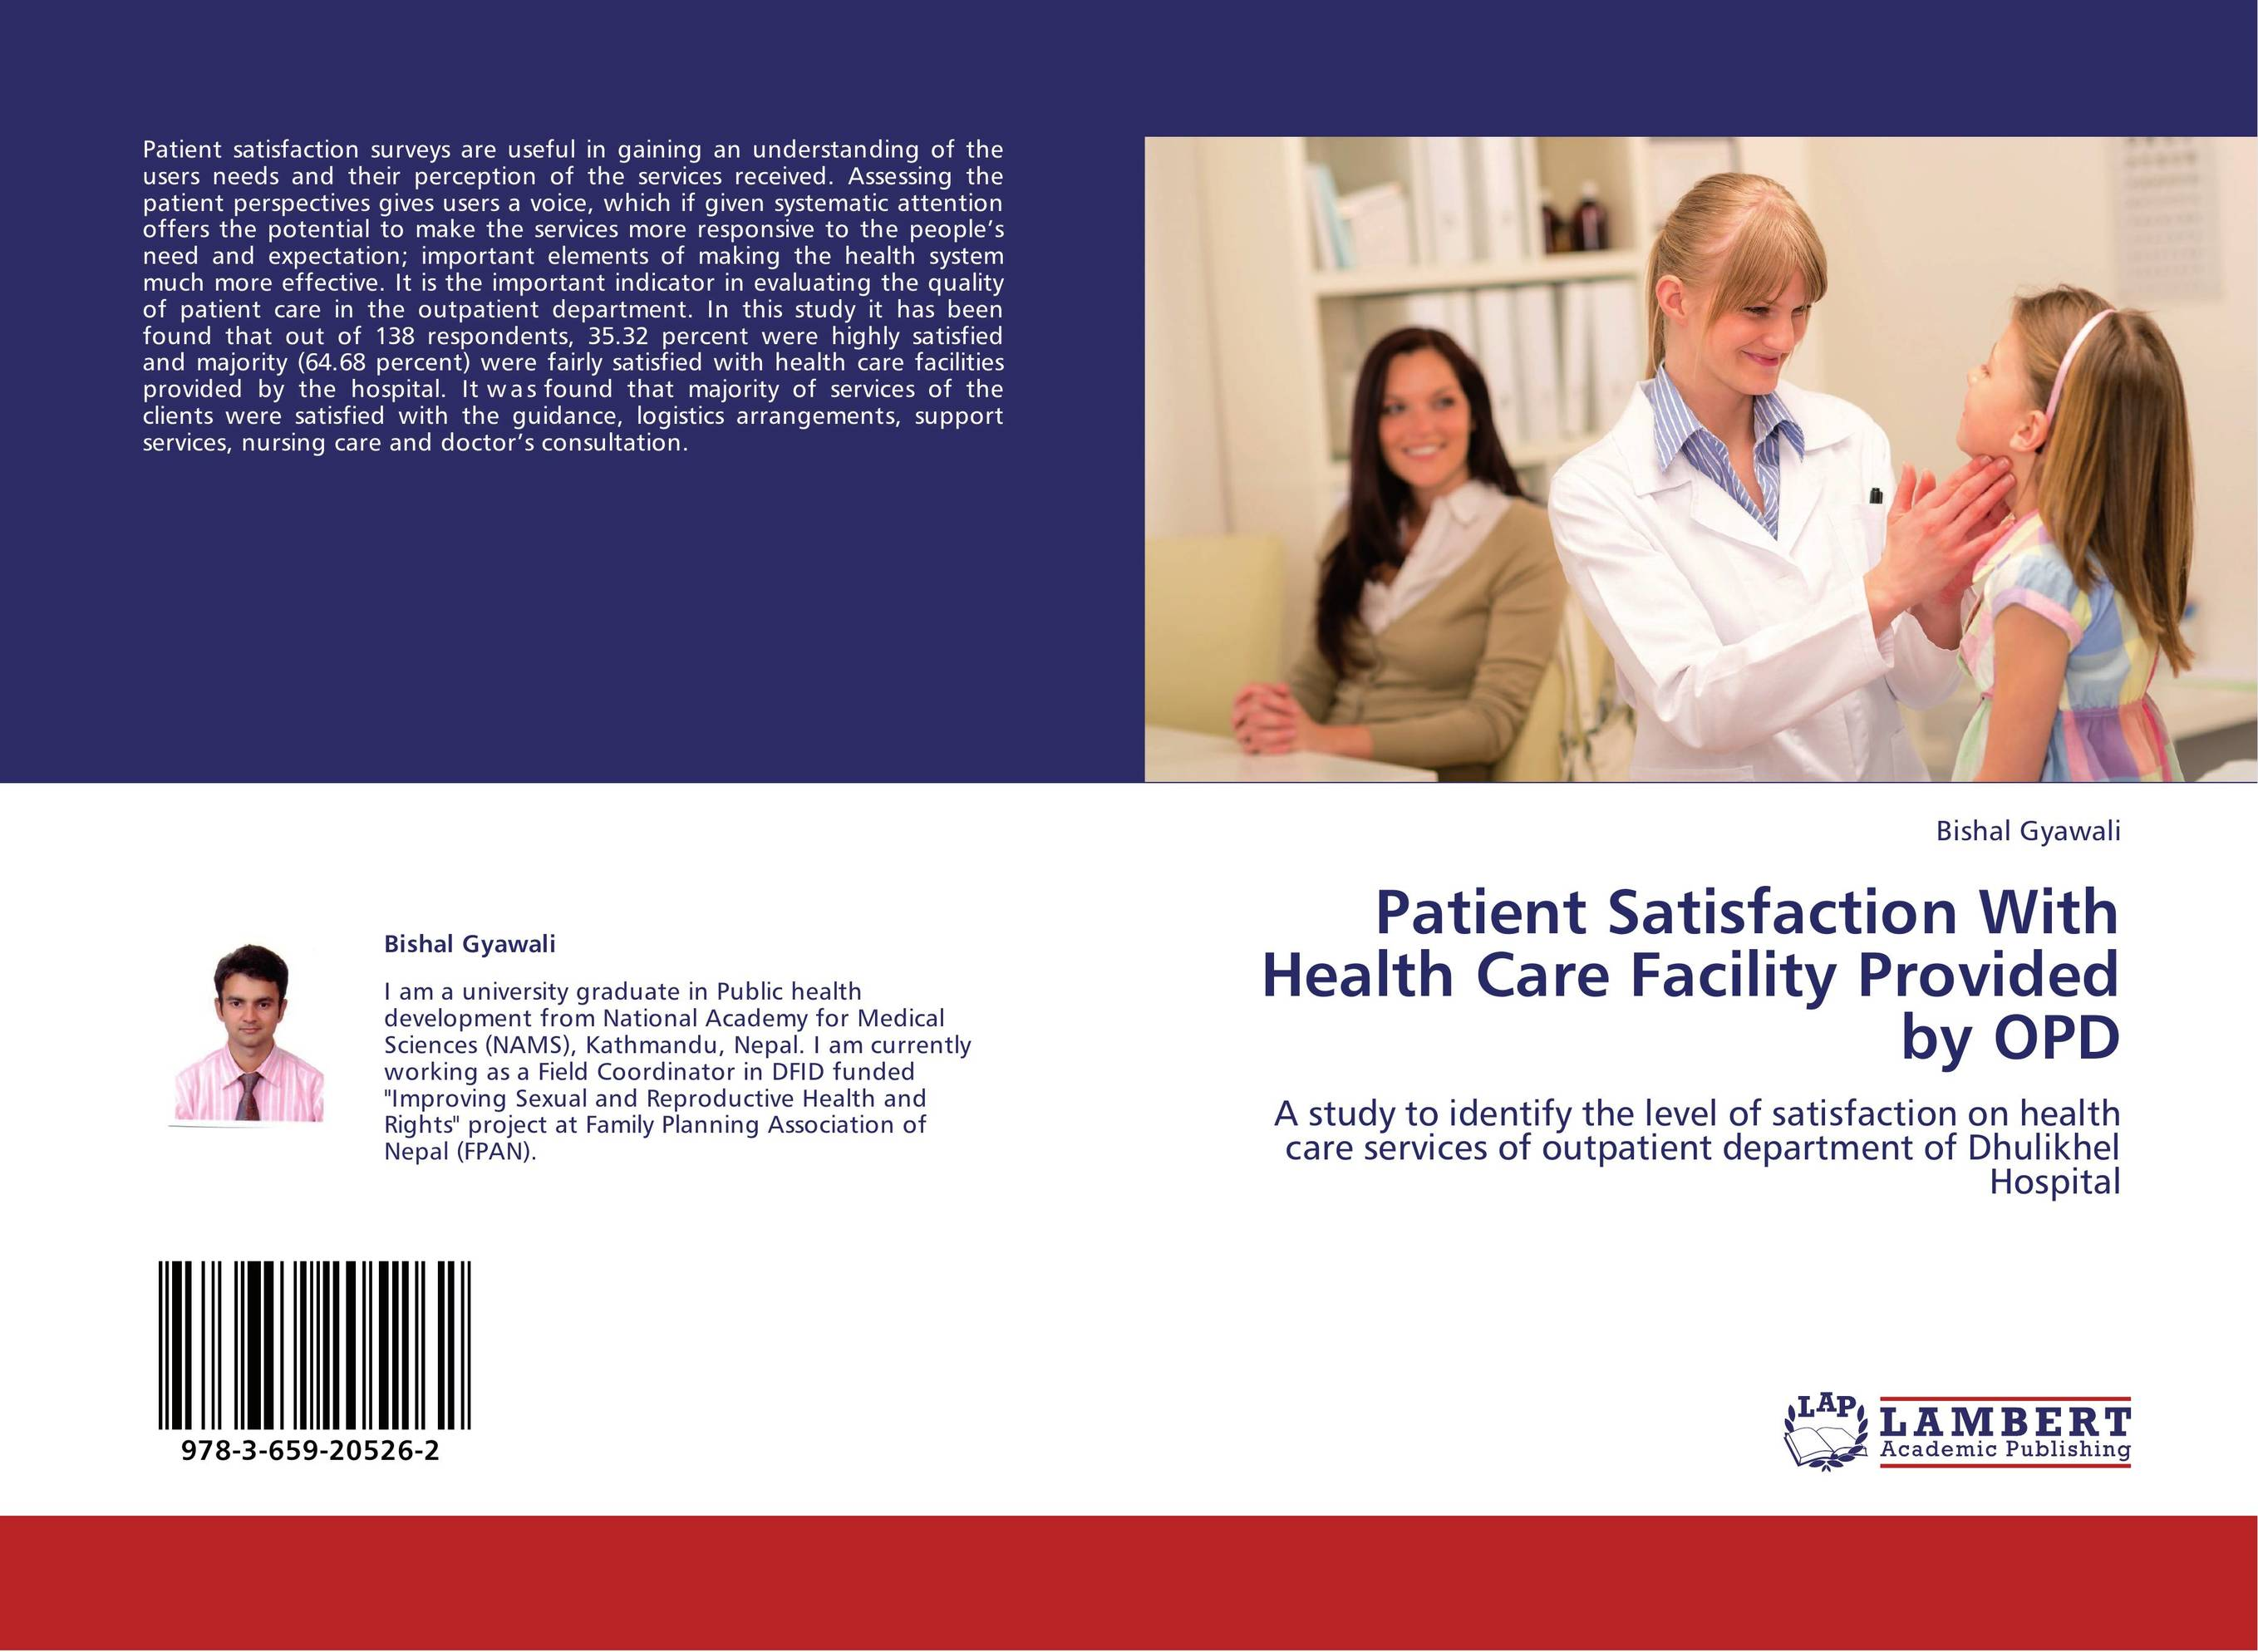 patients satisfaction with services at health Patient satisfaction surveys are conducted to evaluate and improve the quality of health care services a patient satisfaction survey was conducted in the department of ophthalmology, nepal medical college teaching hospital.